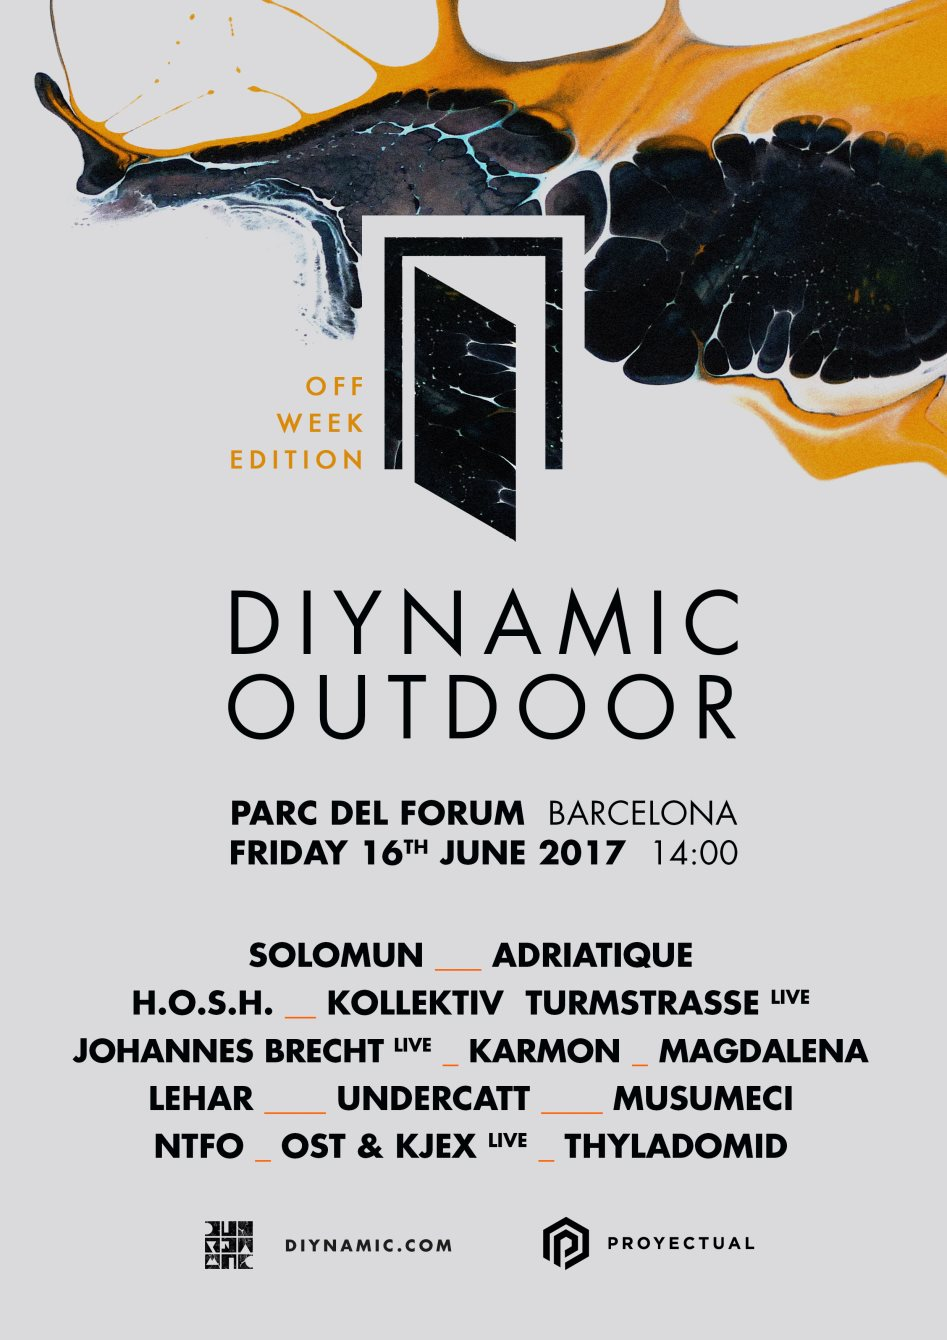 download → Musumeci - live at Diynamic Outdoor 2017 (Parc Del Forum, Barcelona, Sonar 2017) - 720p HD - 16-Jun-2017